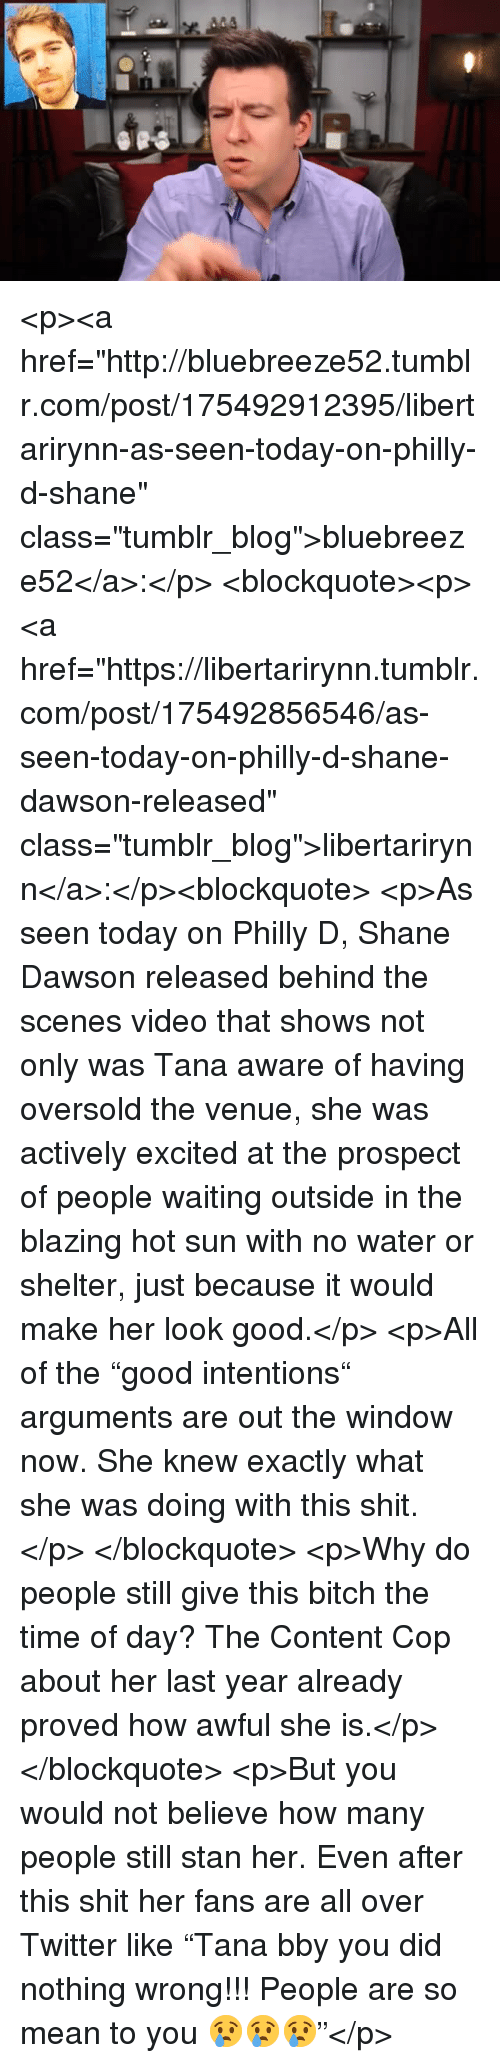 """Bitch, Shit, and Stan: <p><a href=""""http://bluebreeze52.tumblr.com/post/175492912395/libertarirynn-as-seen-today-on-philly-d-shane"""" class=""""tumblr_blog"""">bluebreeze52</a>:</p>  <blockquote><p><a href=""""https://libertarirynn.tumblr.com/post/175492856546/as-seen-today-on-philly-d-shane-dawson-released"""" class=""""tumblr_blog"""">libertarirynn</a>:</p><blockquote> <p>As seen today on Philly D, Shane Dawson released behind the scenes video that shows not only was Tana aware of having oversold the venue, she was actively excited at the prospect of people waiting outside in the blazing hot sun with no water or shelter, just because it would make her look good.</p>  <p>All of the """"good intentions"""" arguments are out the window now. She knew exactly what she was doing with this shit.</p> </blockquote> <p>Why do people still give this bitch the time of day? The Content Cop about her last year already proved how awful she is.</p></blockquote>  <p>But you would not believe how many people still stan her. Even after this shit her fans are all over Twitter like """"Tana bby you did nothing wrong!!! People are so mean to you 😢😢😢""""</p>"""